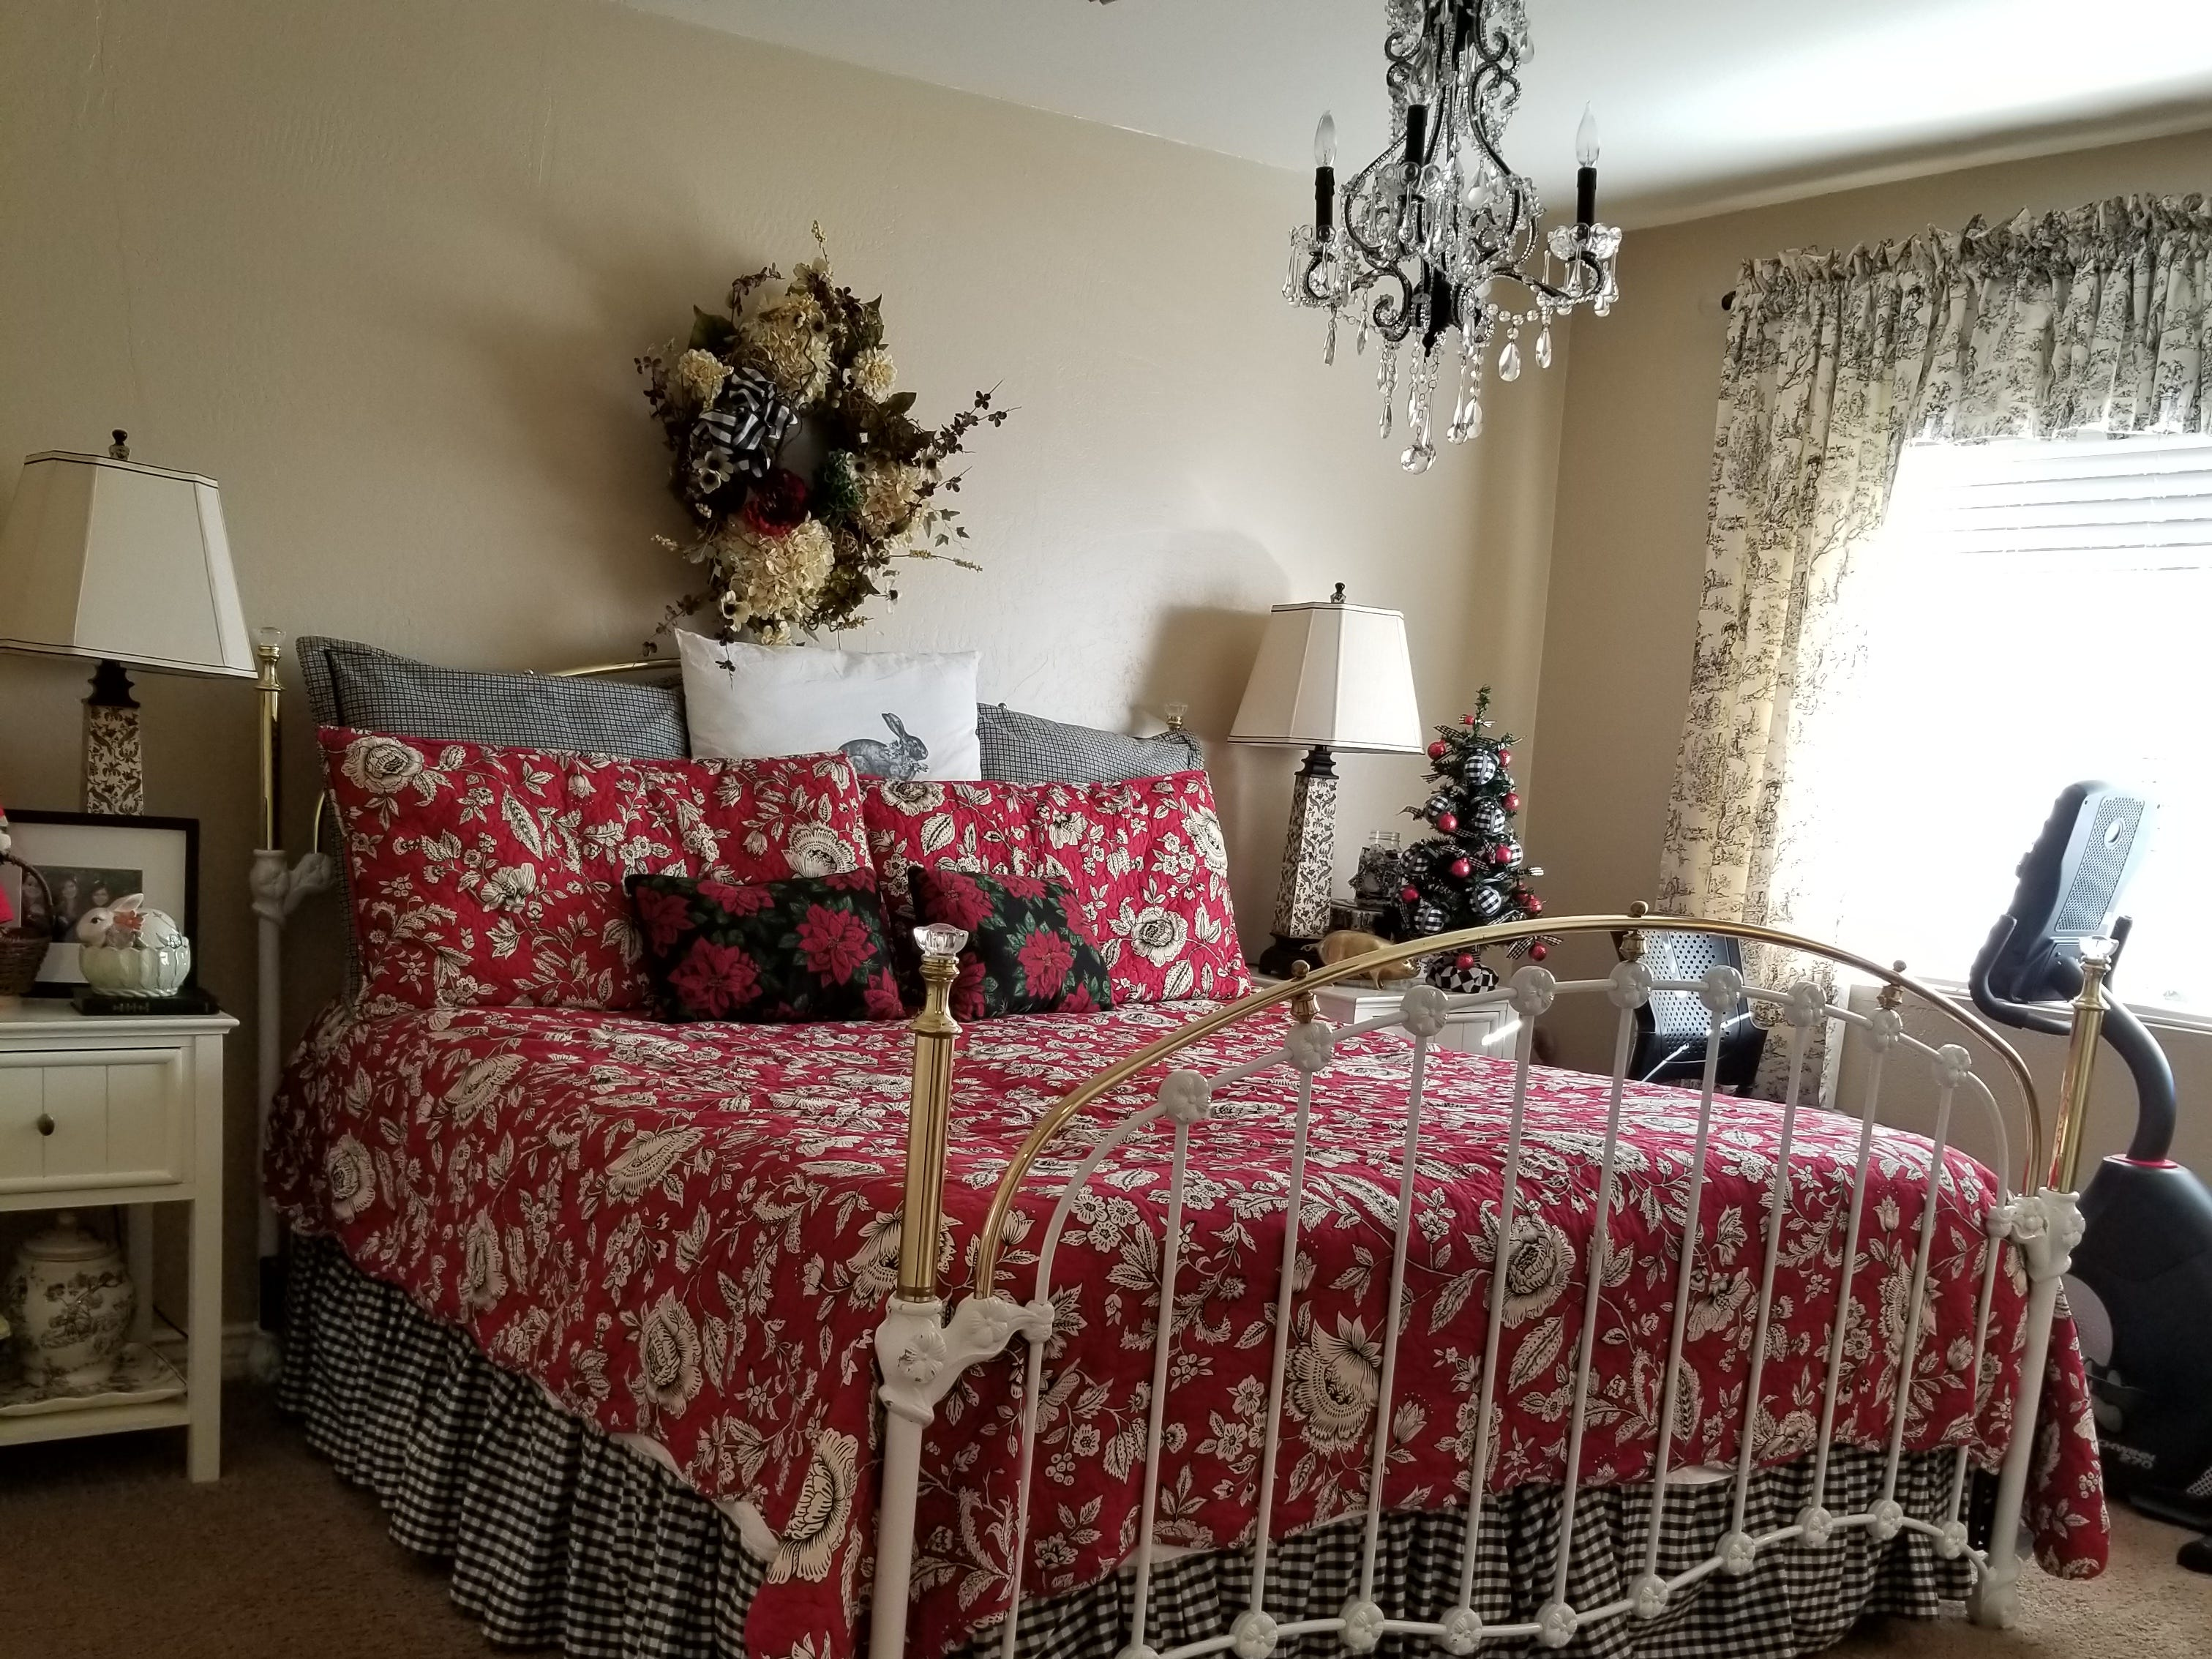 The second guest room is complete with delightfully dressed layers of fabrics on an iron bed, a crystal chandelier, and black and white with red influence throughout.  Each bedroom features walk-in closets. An elegant Queen Anne chair and floor lamp shade in a corner is upholstered in fabric matching the bedroom drapery.